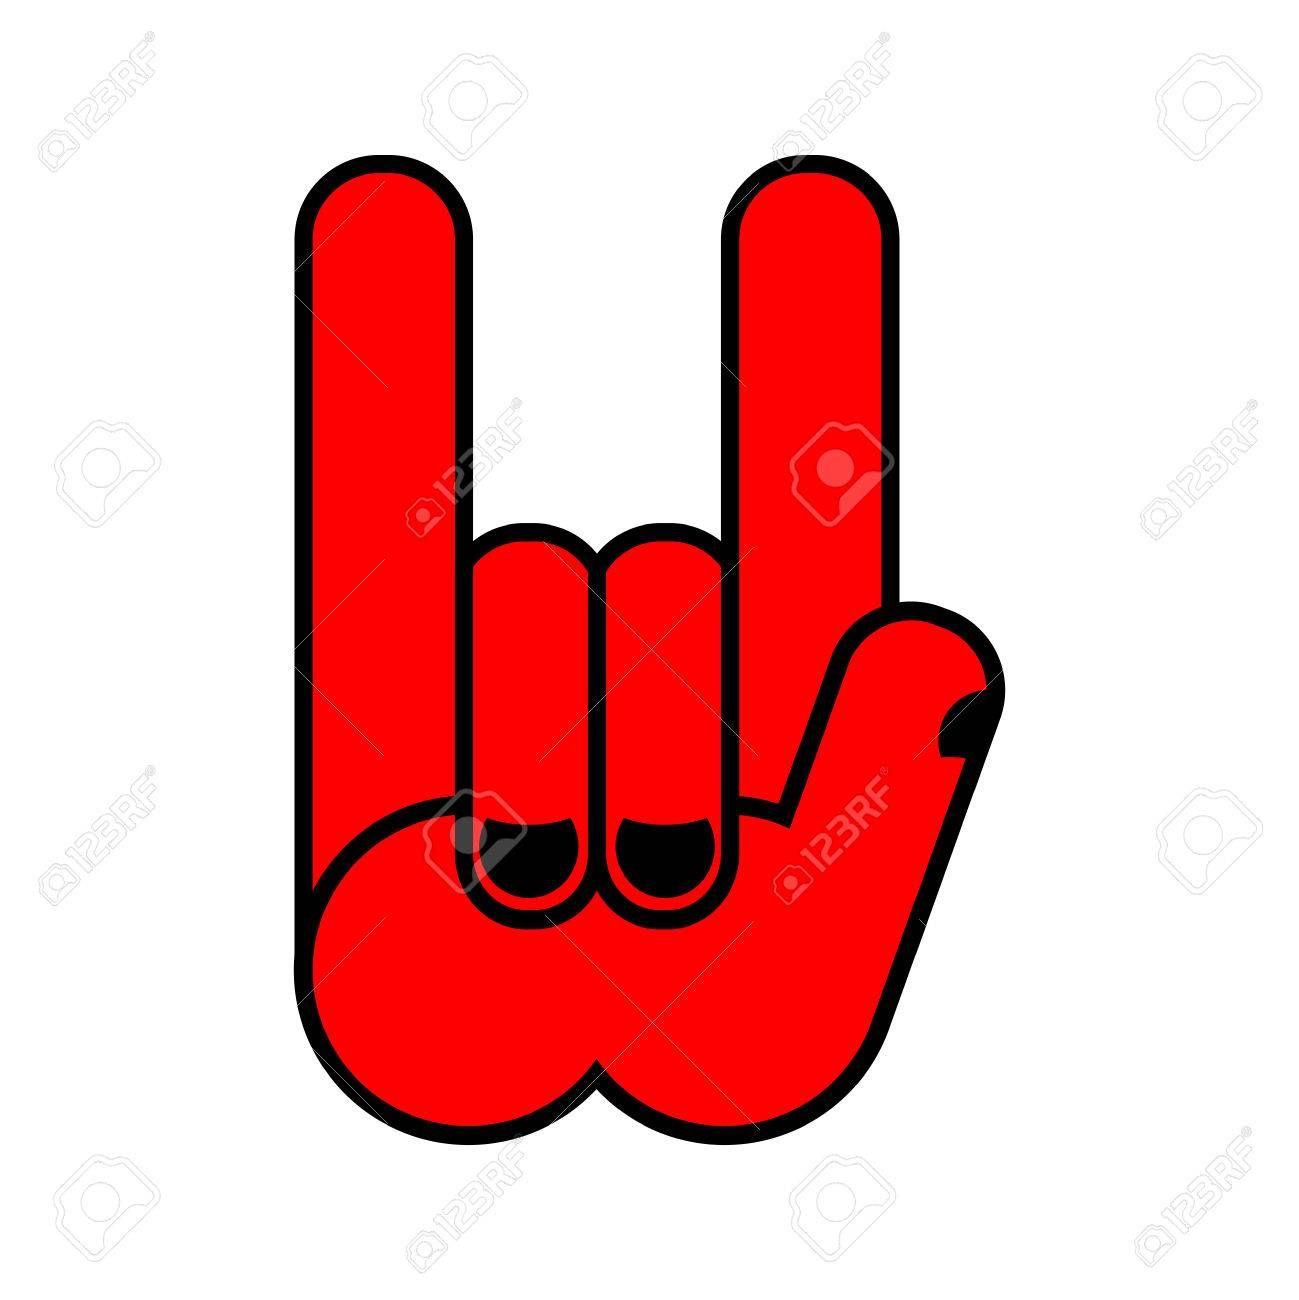 Rock hand symbol of music rock and roll emblem isolated royalty rock hand symbol of music rock and roll emblem isolated stock vector 66675498 buycottarizona